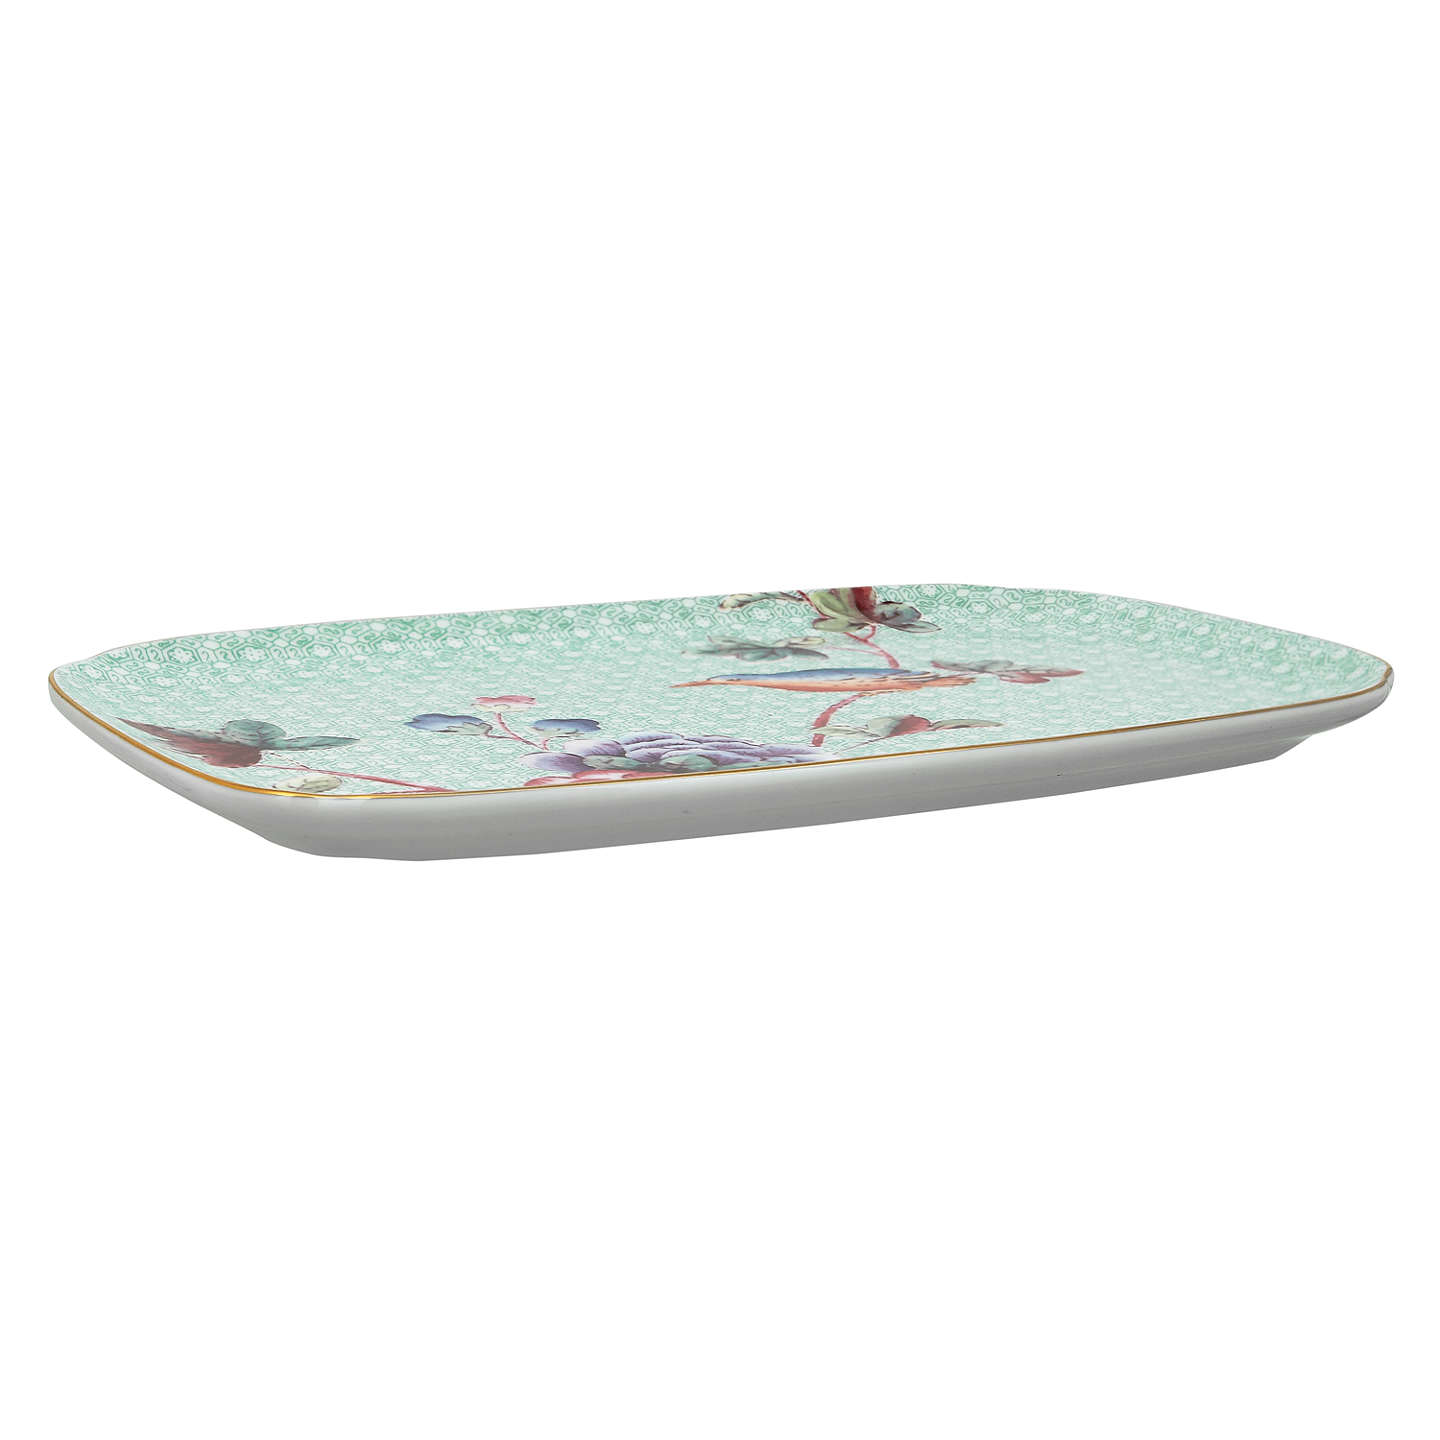 BuyWedgwood Cuckoo Sandwich Tray, Multi Online at johnlewis.com